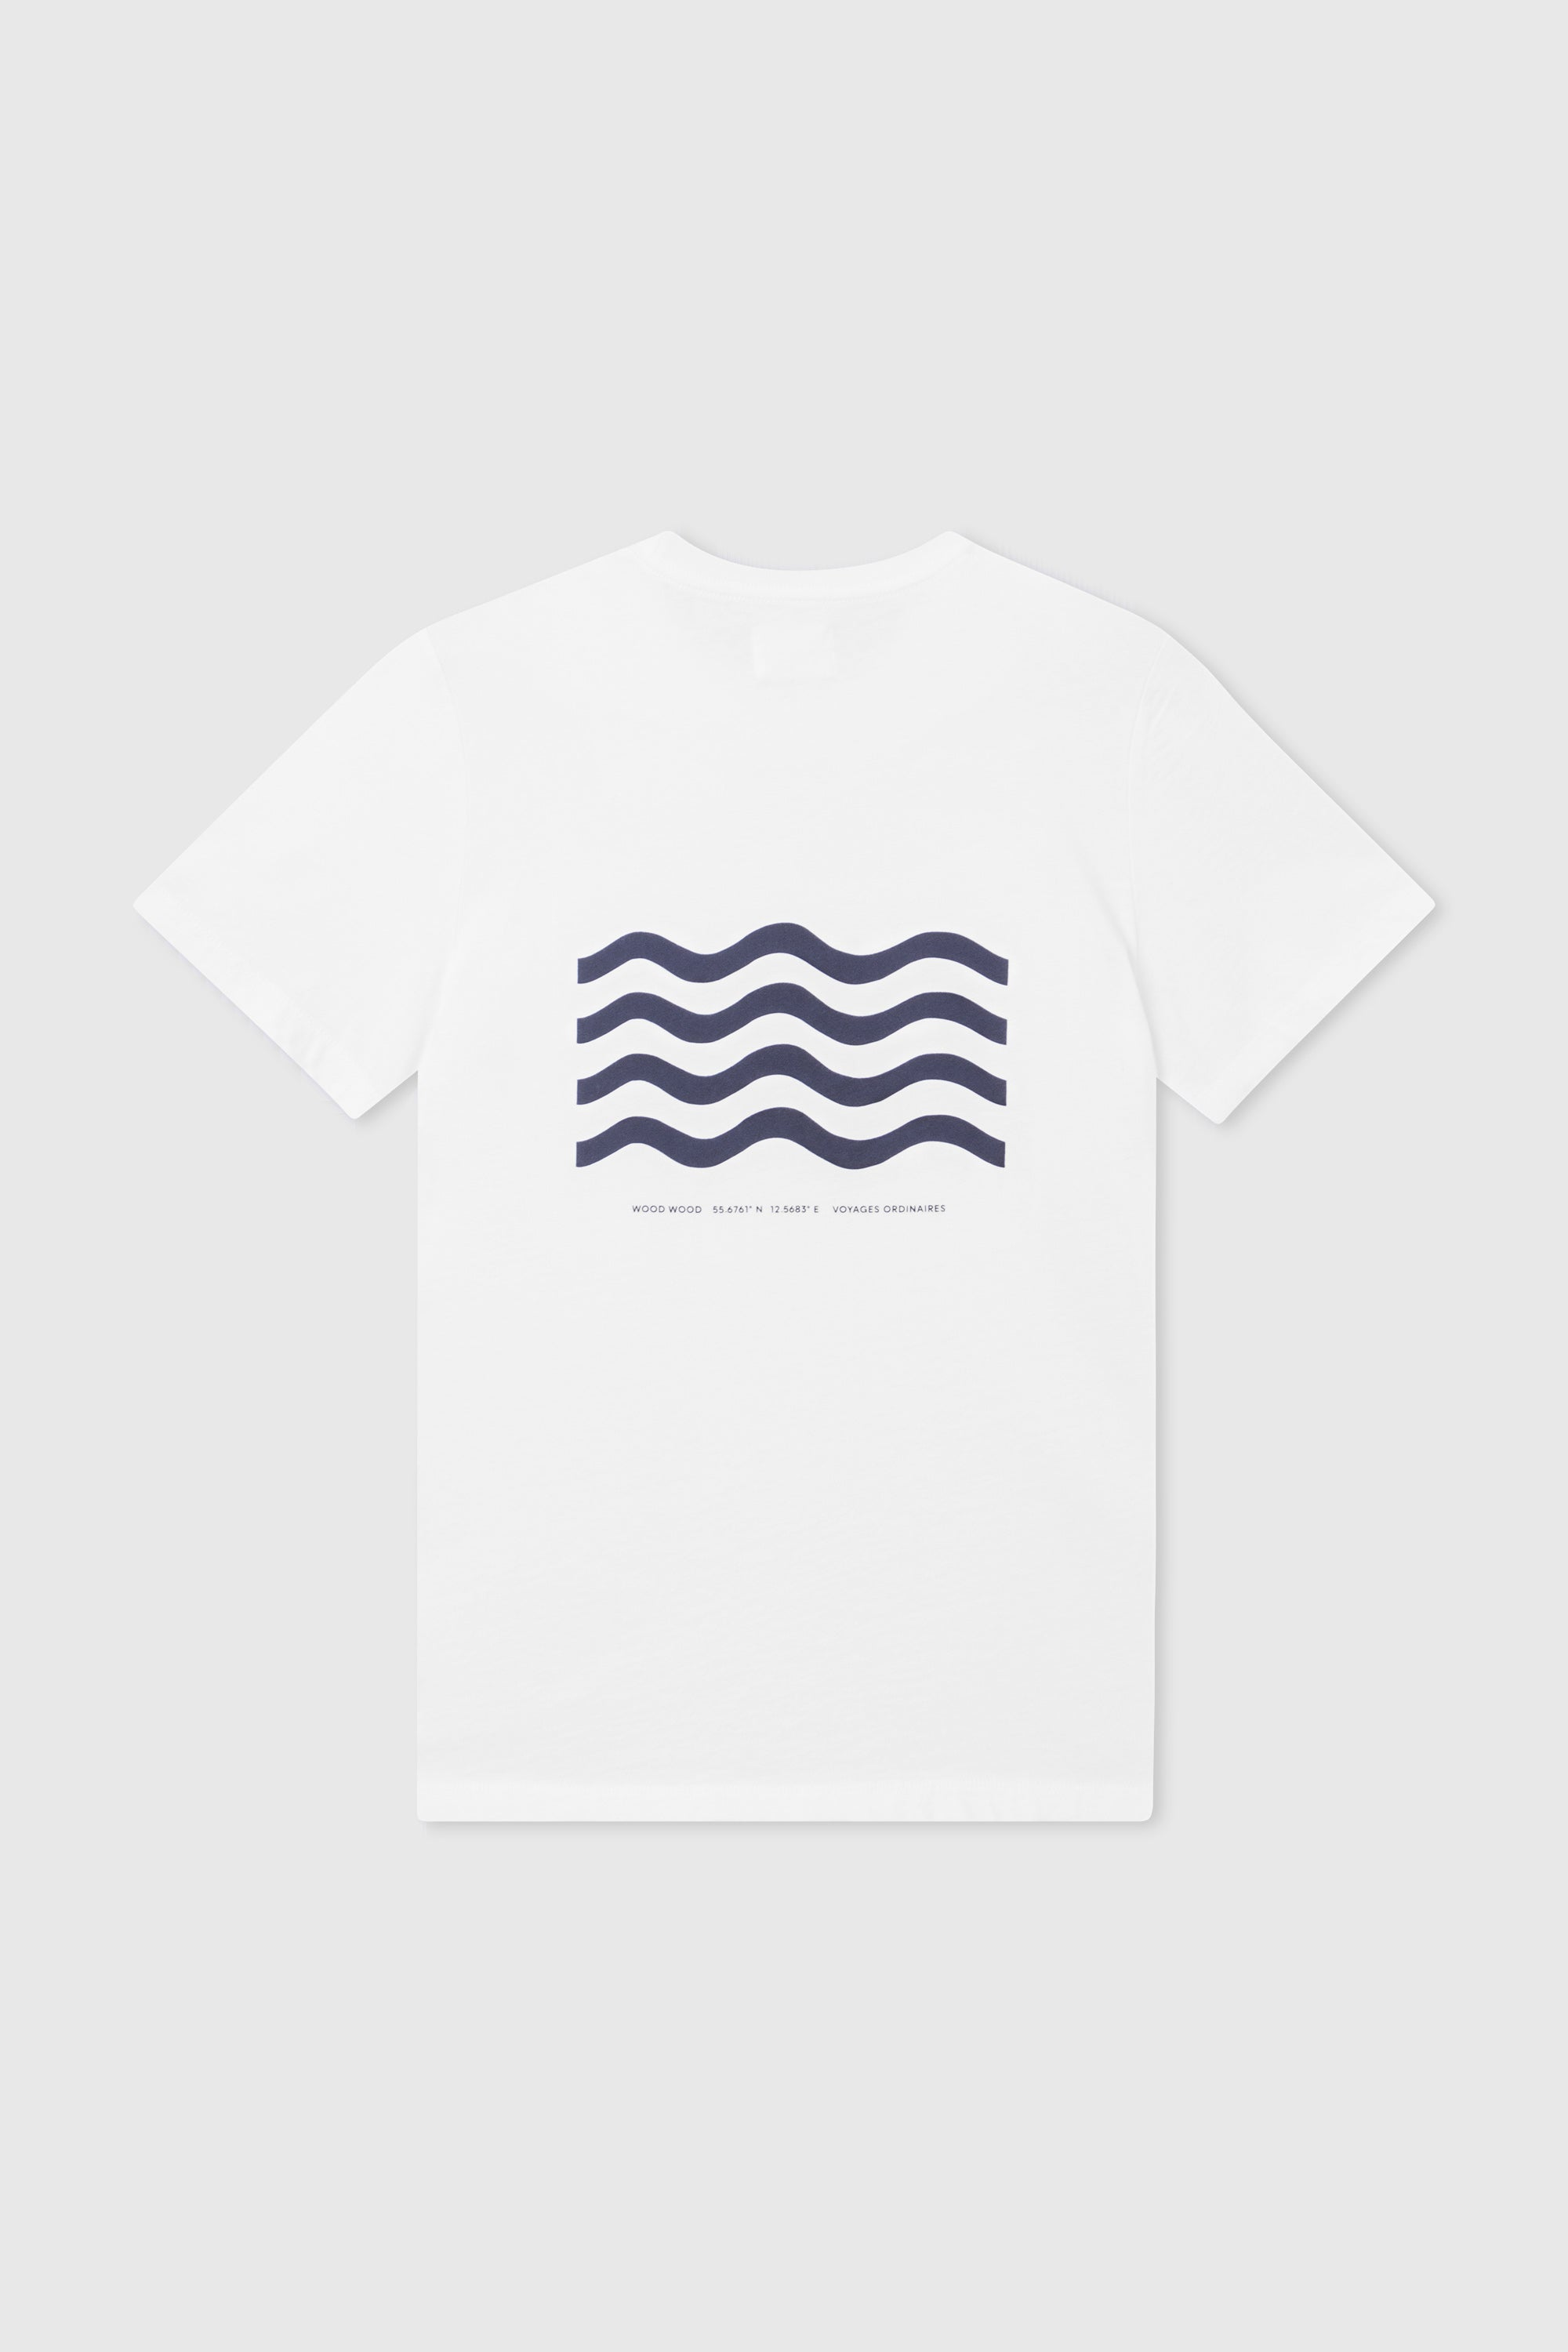 WOOD WOOD WAVE T-SHIRT